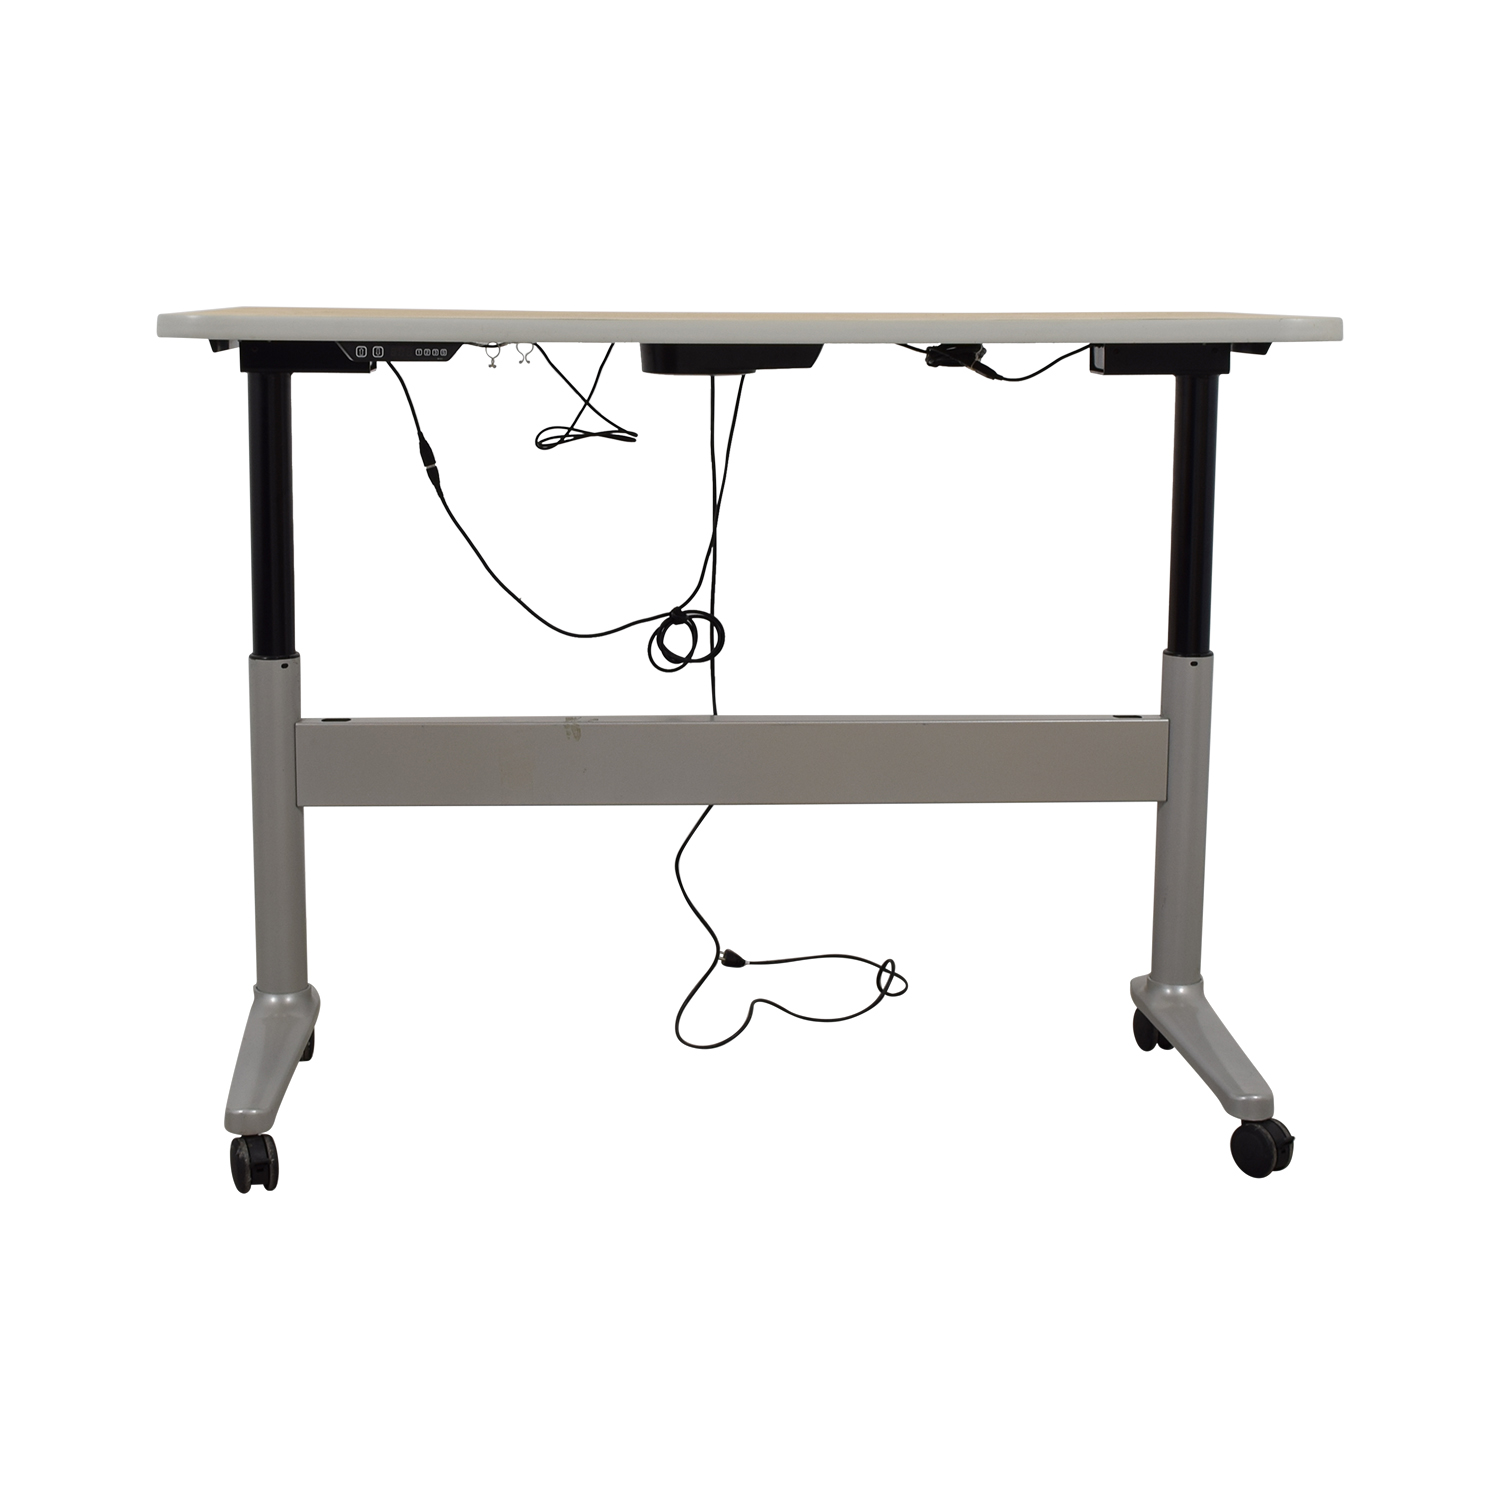 buy UpDesk Electronically Controlled Standing Desk on Castors UpDesk Tables